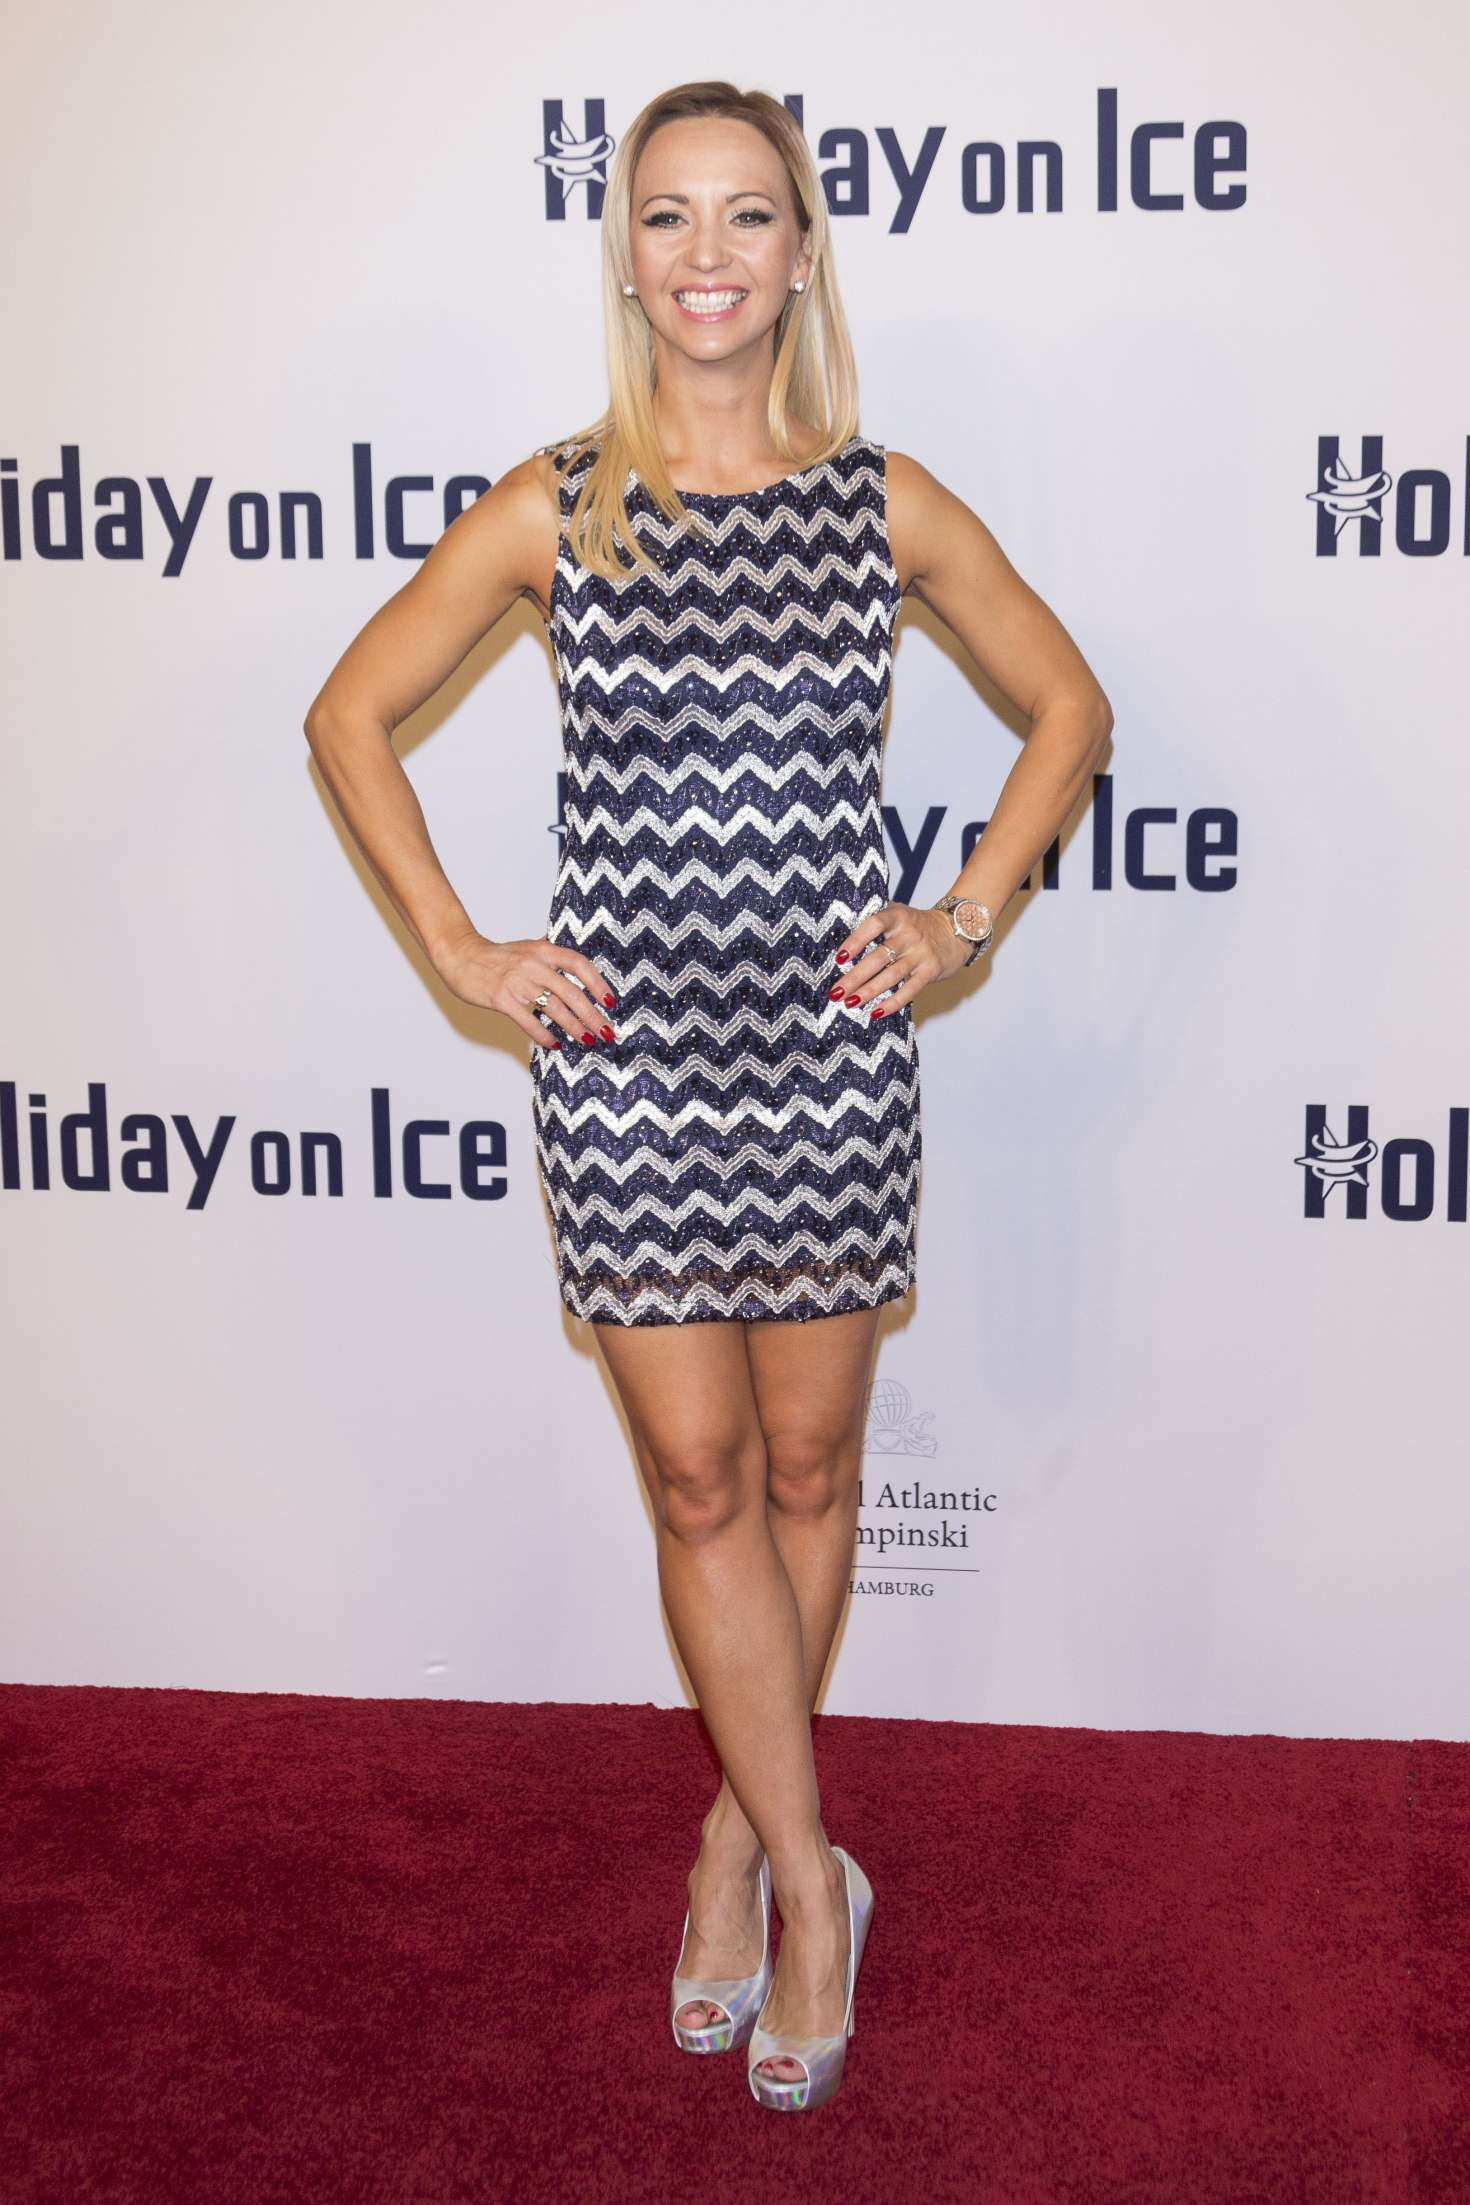 Annette Dytrt - Holiday on Ice Gala 2016 in Hamburg